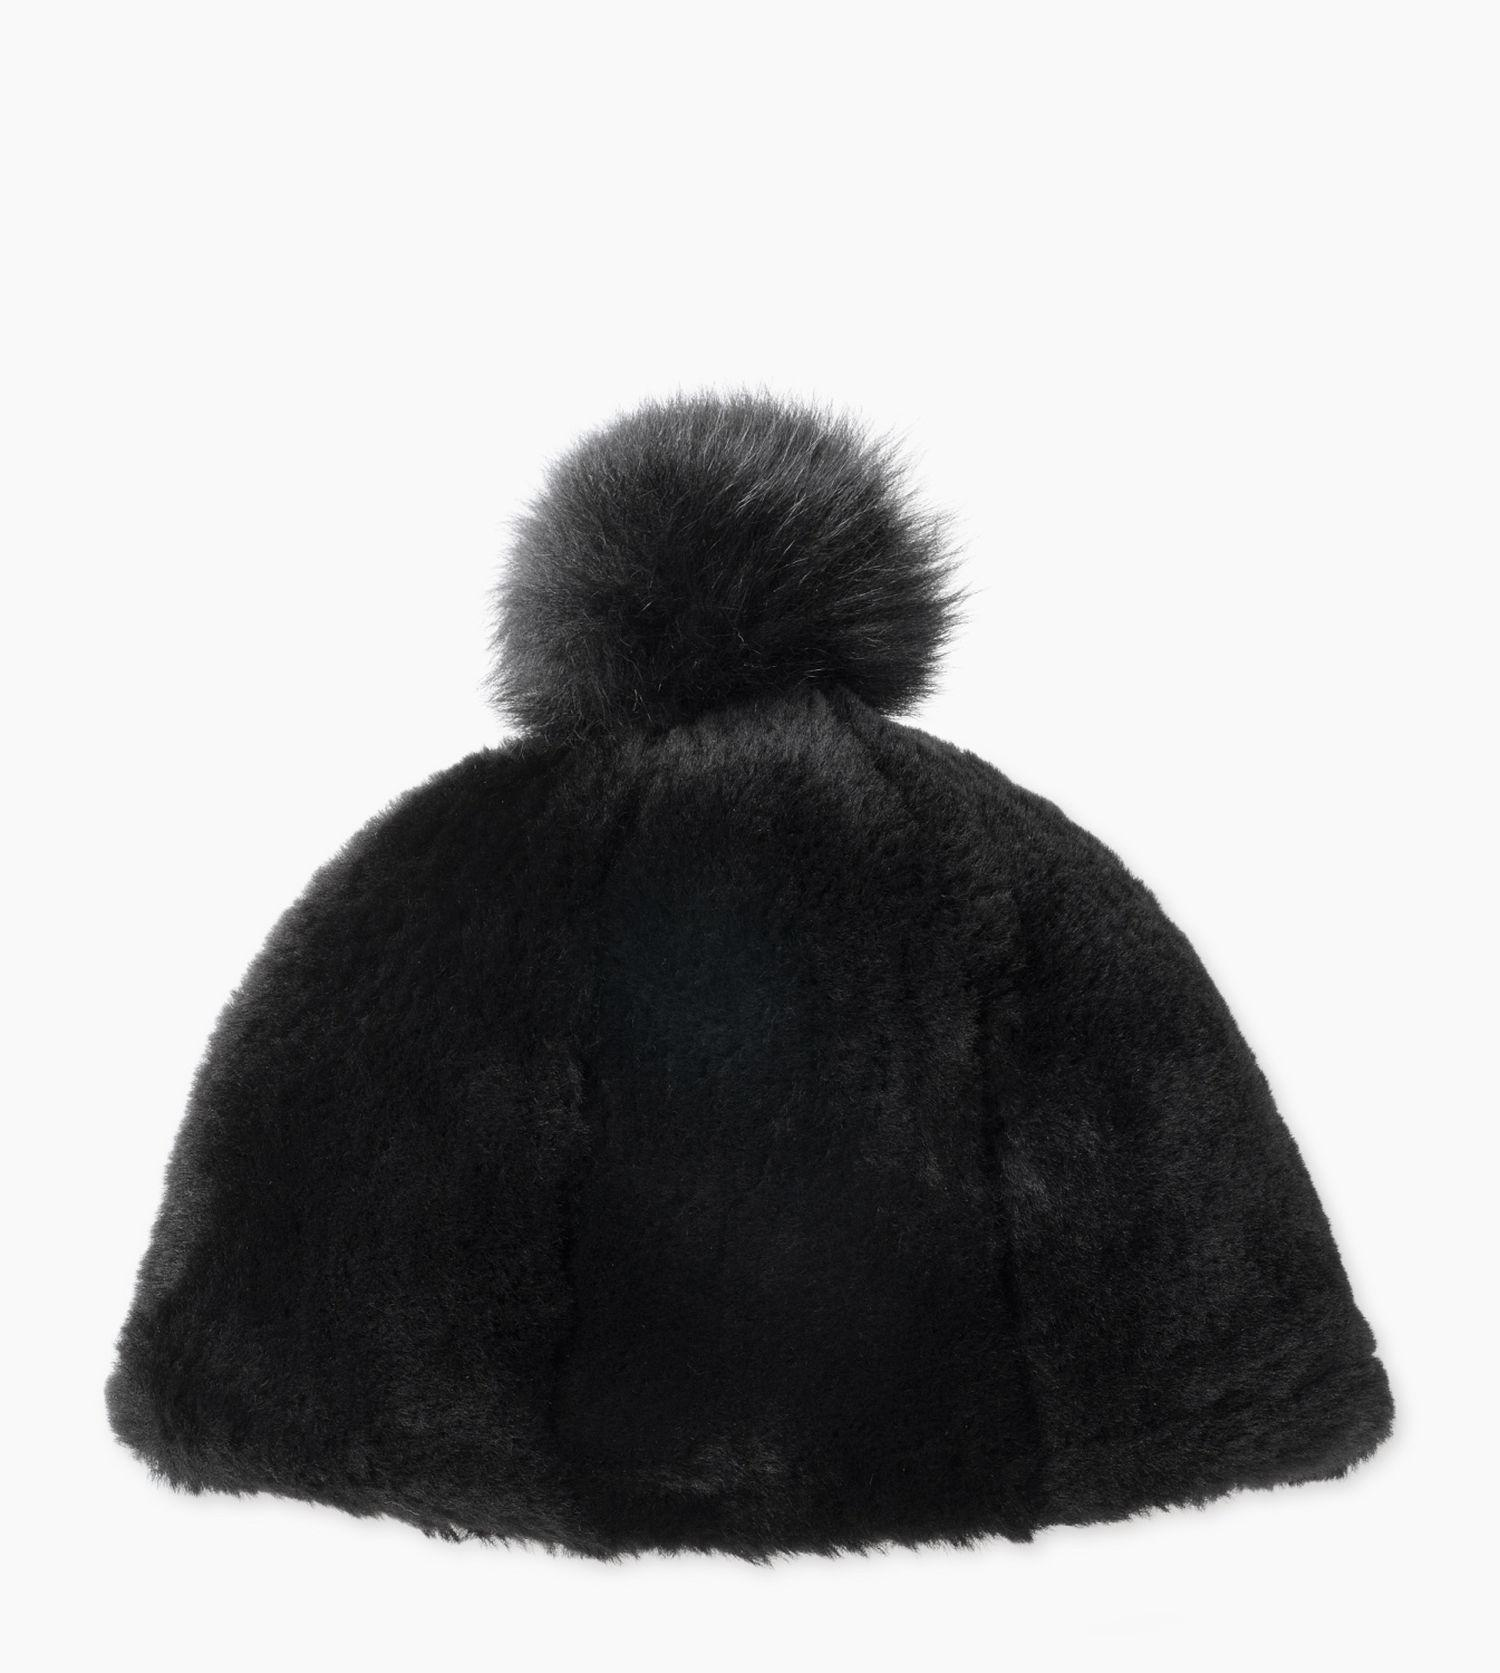 6eb67e2fd0a Lyst - UGG Women s Exposed Fur Beanie in Black